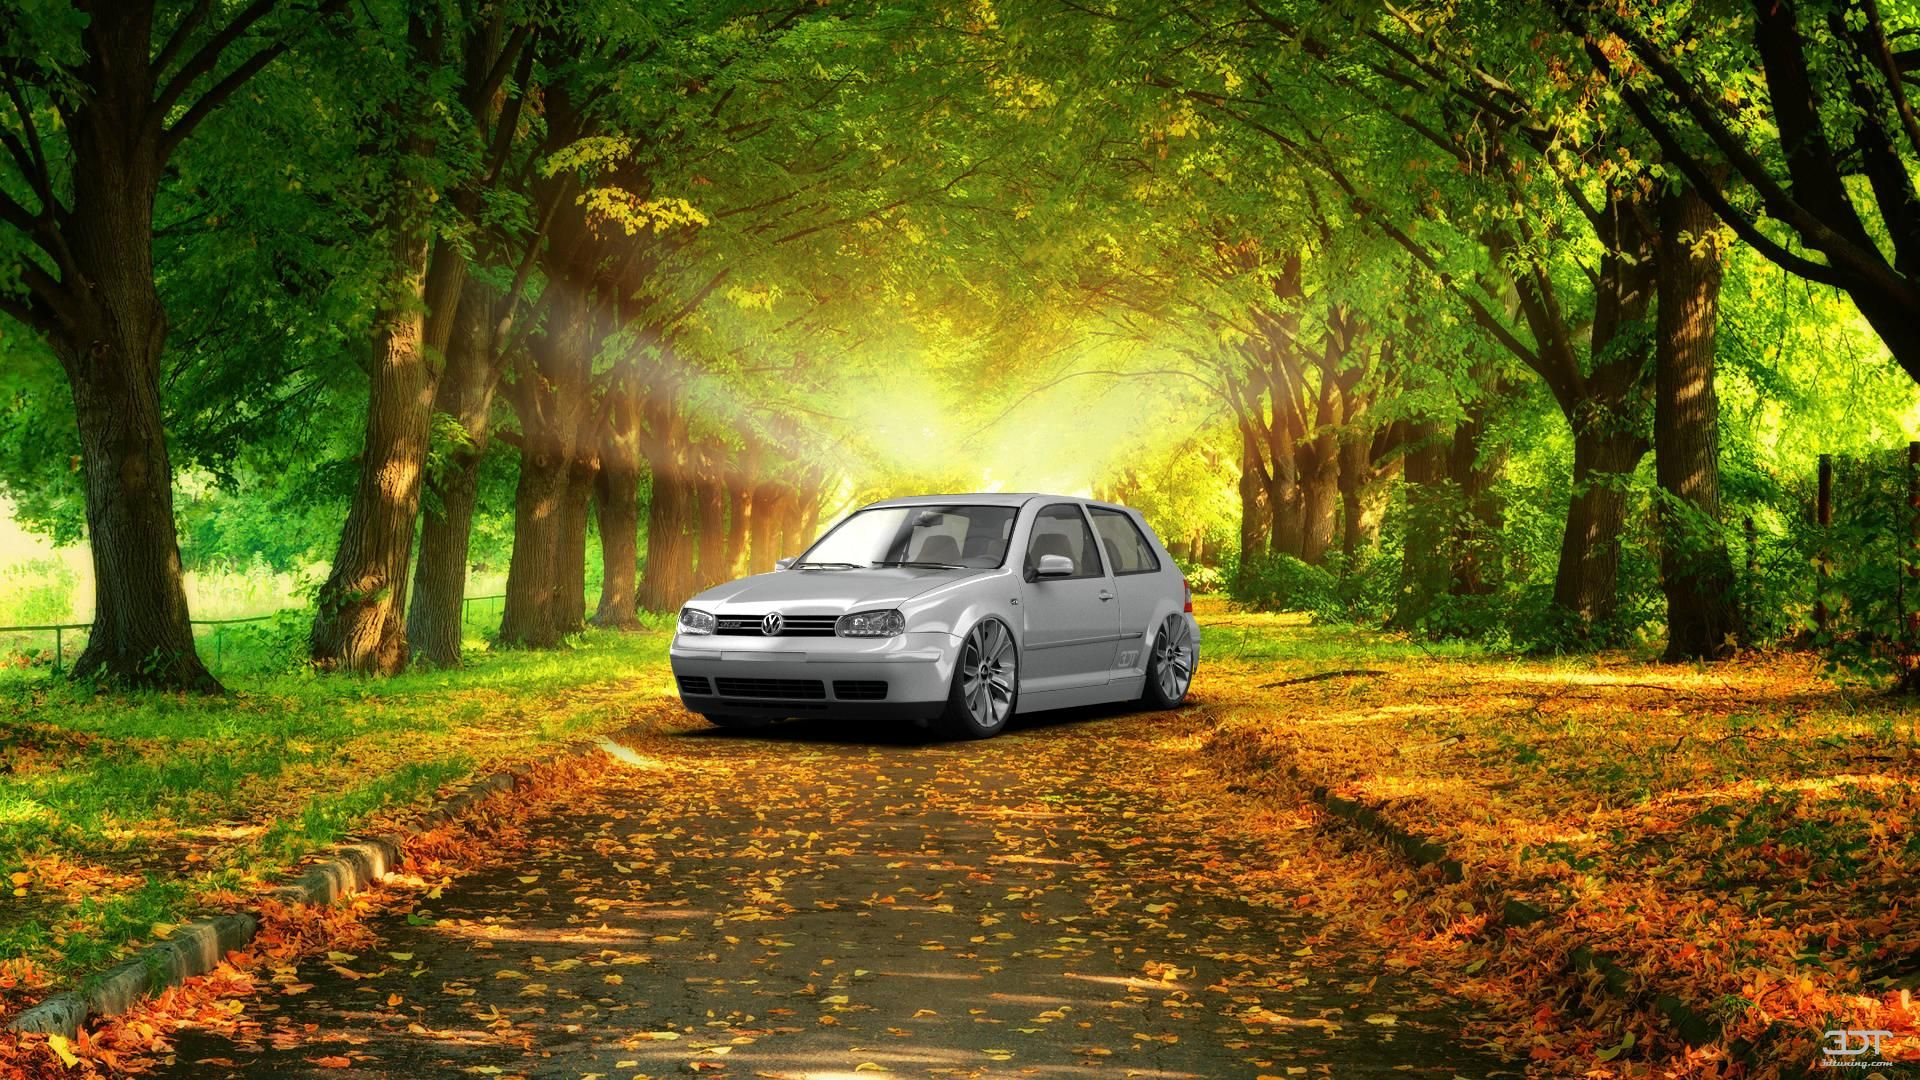 Incroyable Checkout My Tuning #Volkswagen #Golf4 2003 At 3DTuning #3dtuning #tuning